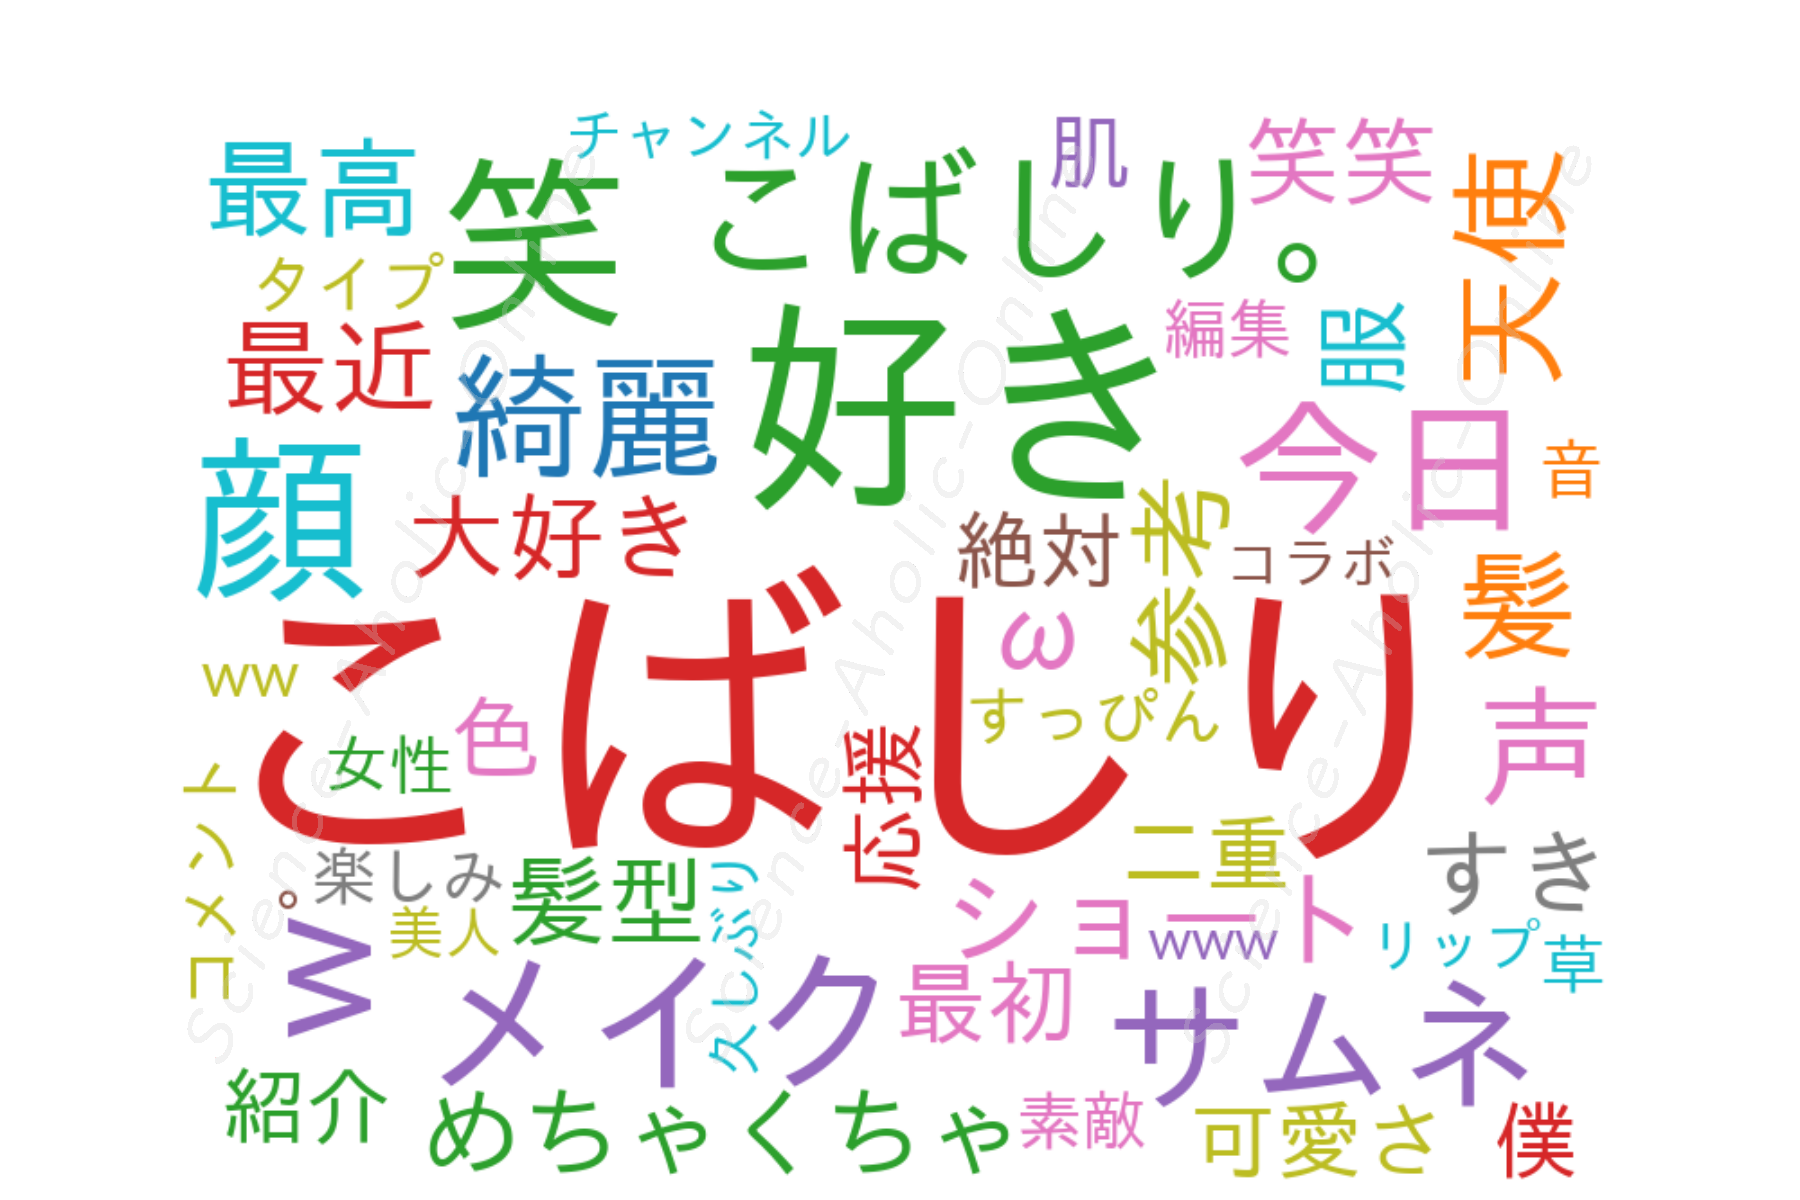 https://science-aholic-online.com/wp-content/uploads/2020/08/wordcloud_こばしり。.png